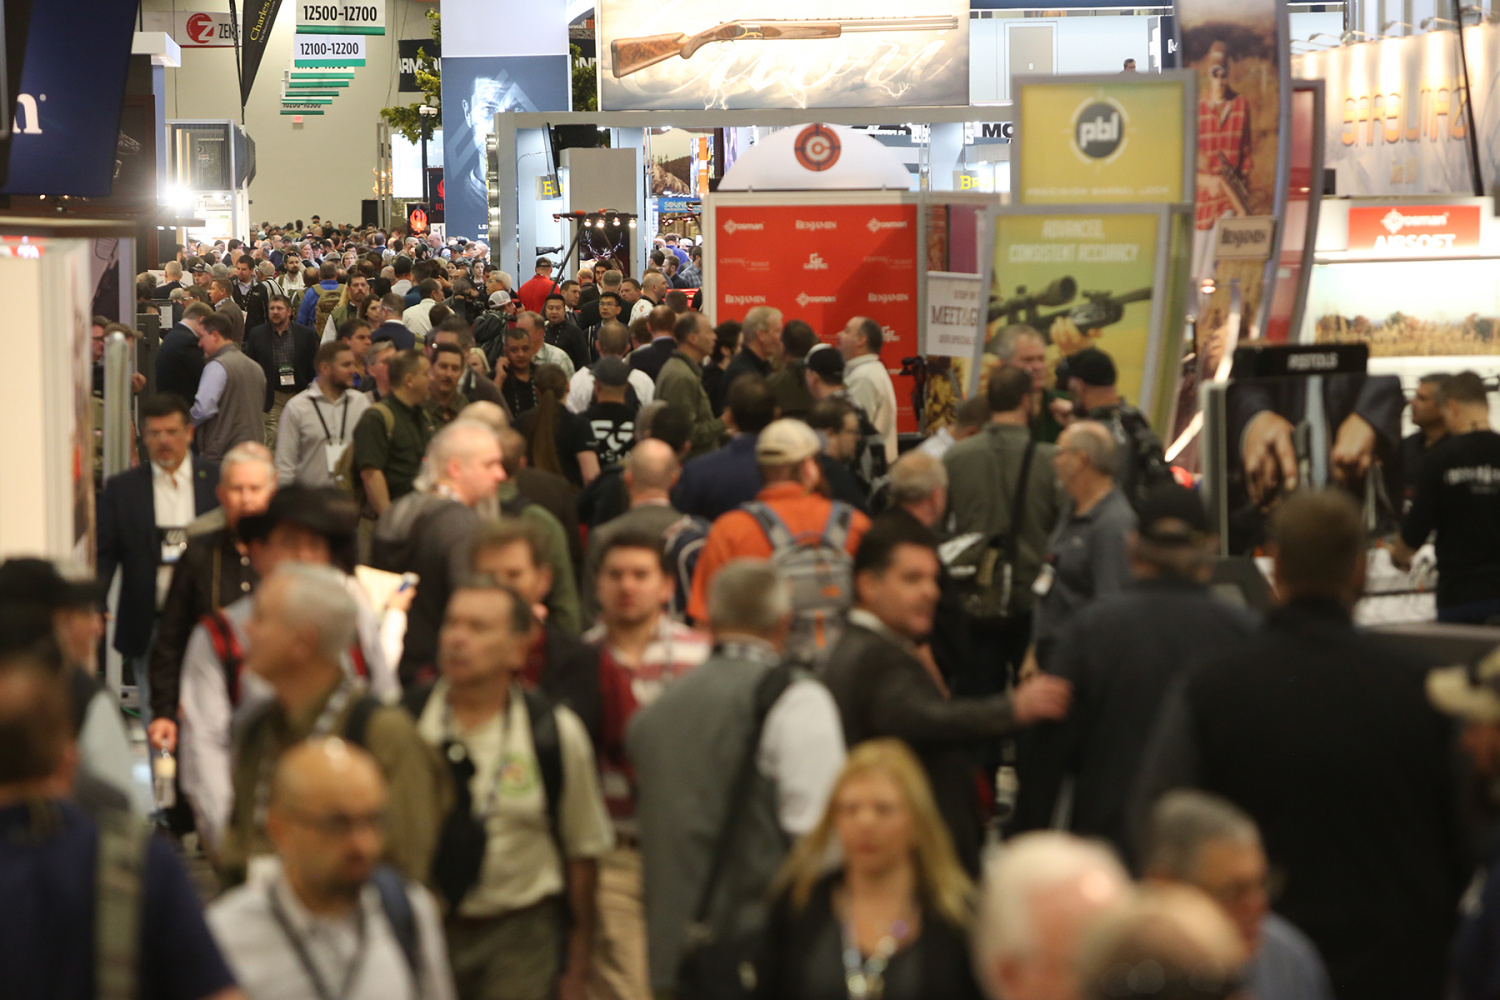 SHOT Show crowds, a breeding ground for communicable disease.